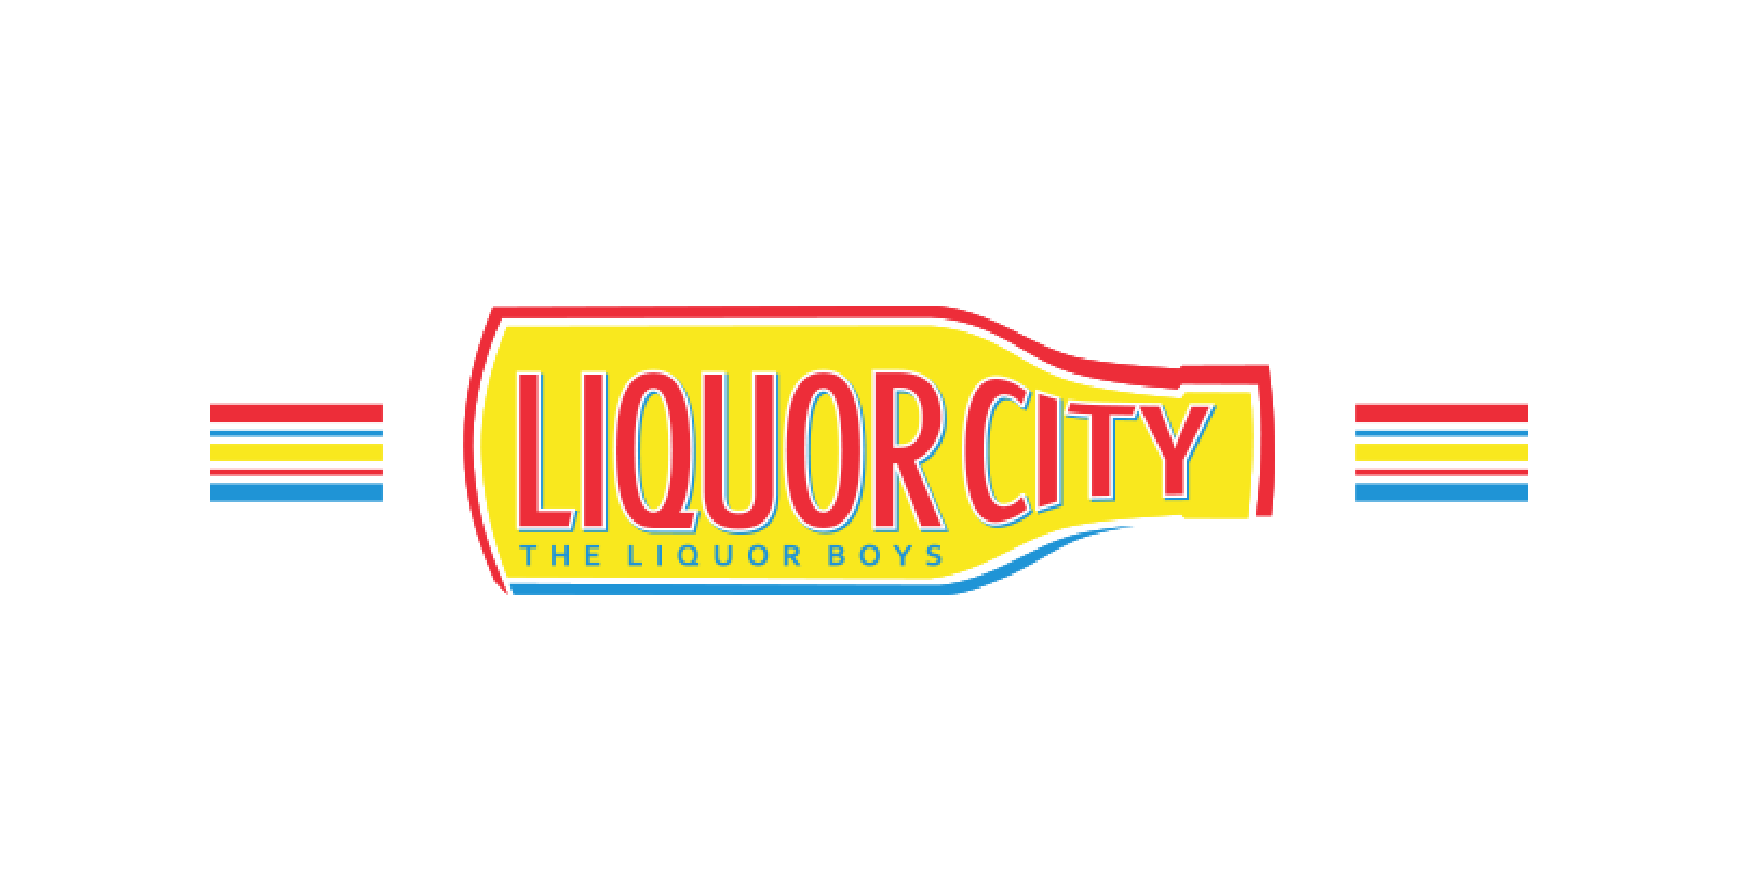 Liquor city services page testimonial-10